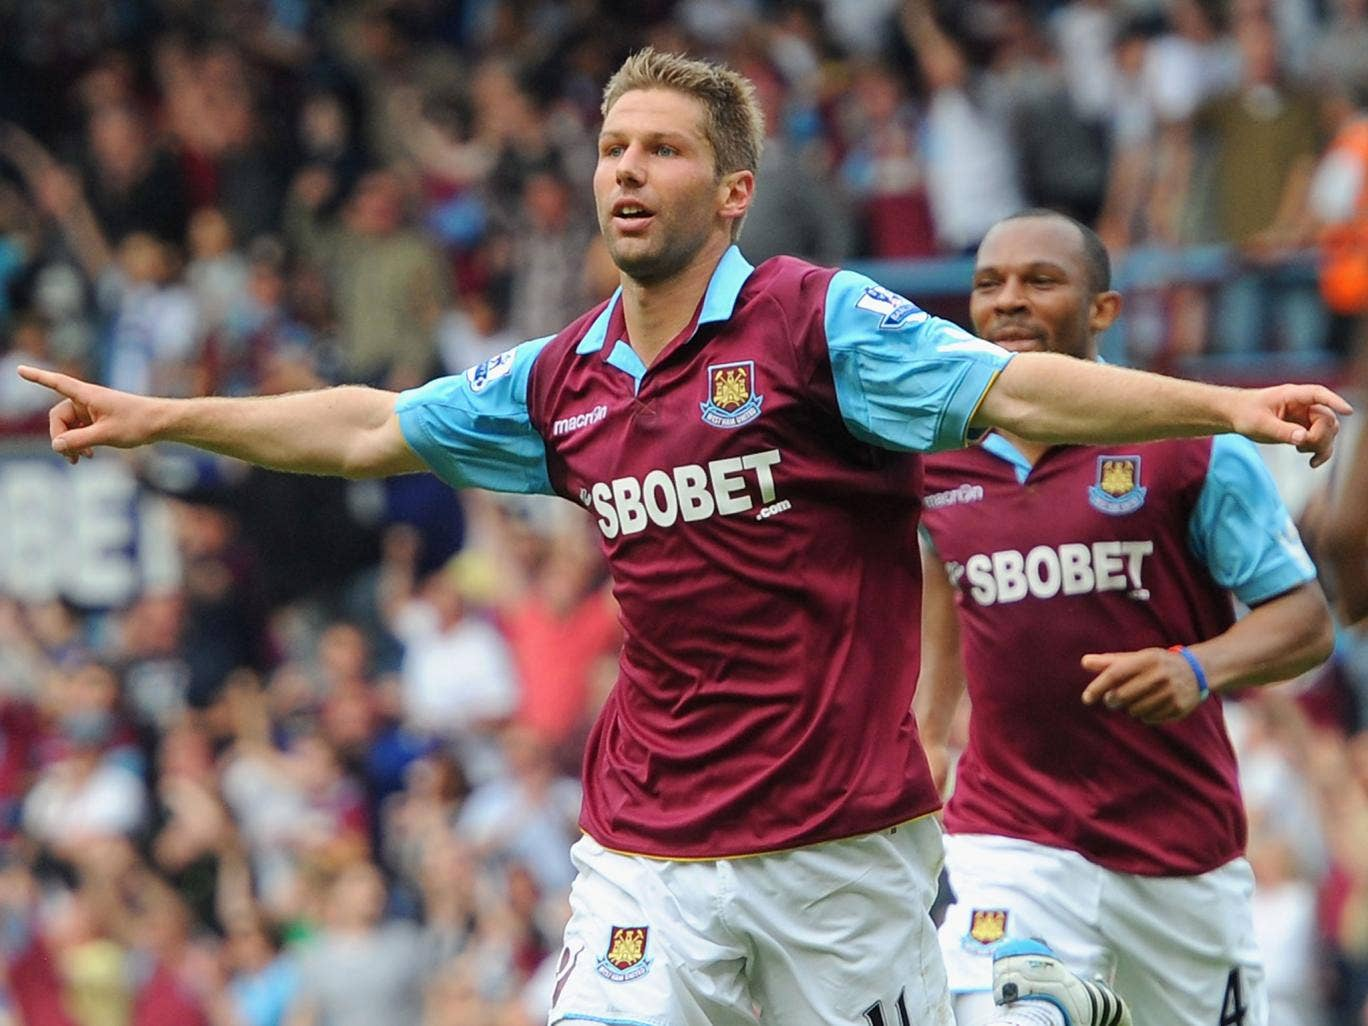 Thomas Hitzlsperger has thrust the issue of homosexuality in football back into the spotlight